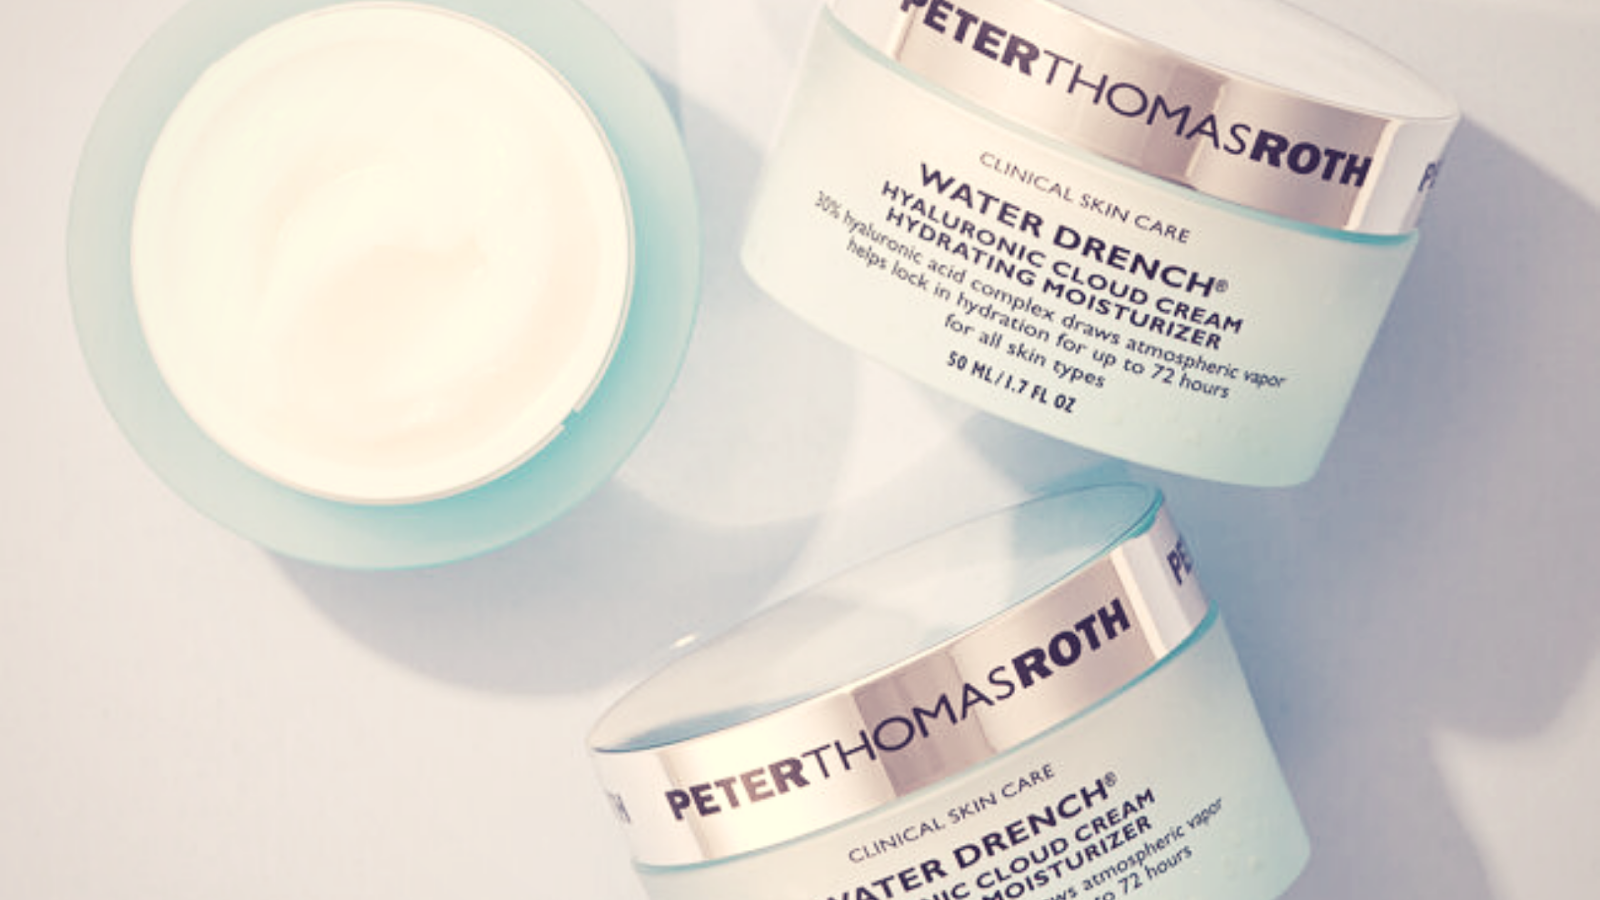 Three Peter Roth Thomas water drench cloud cream one with removed lid